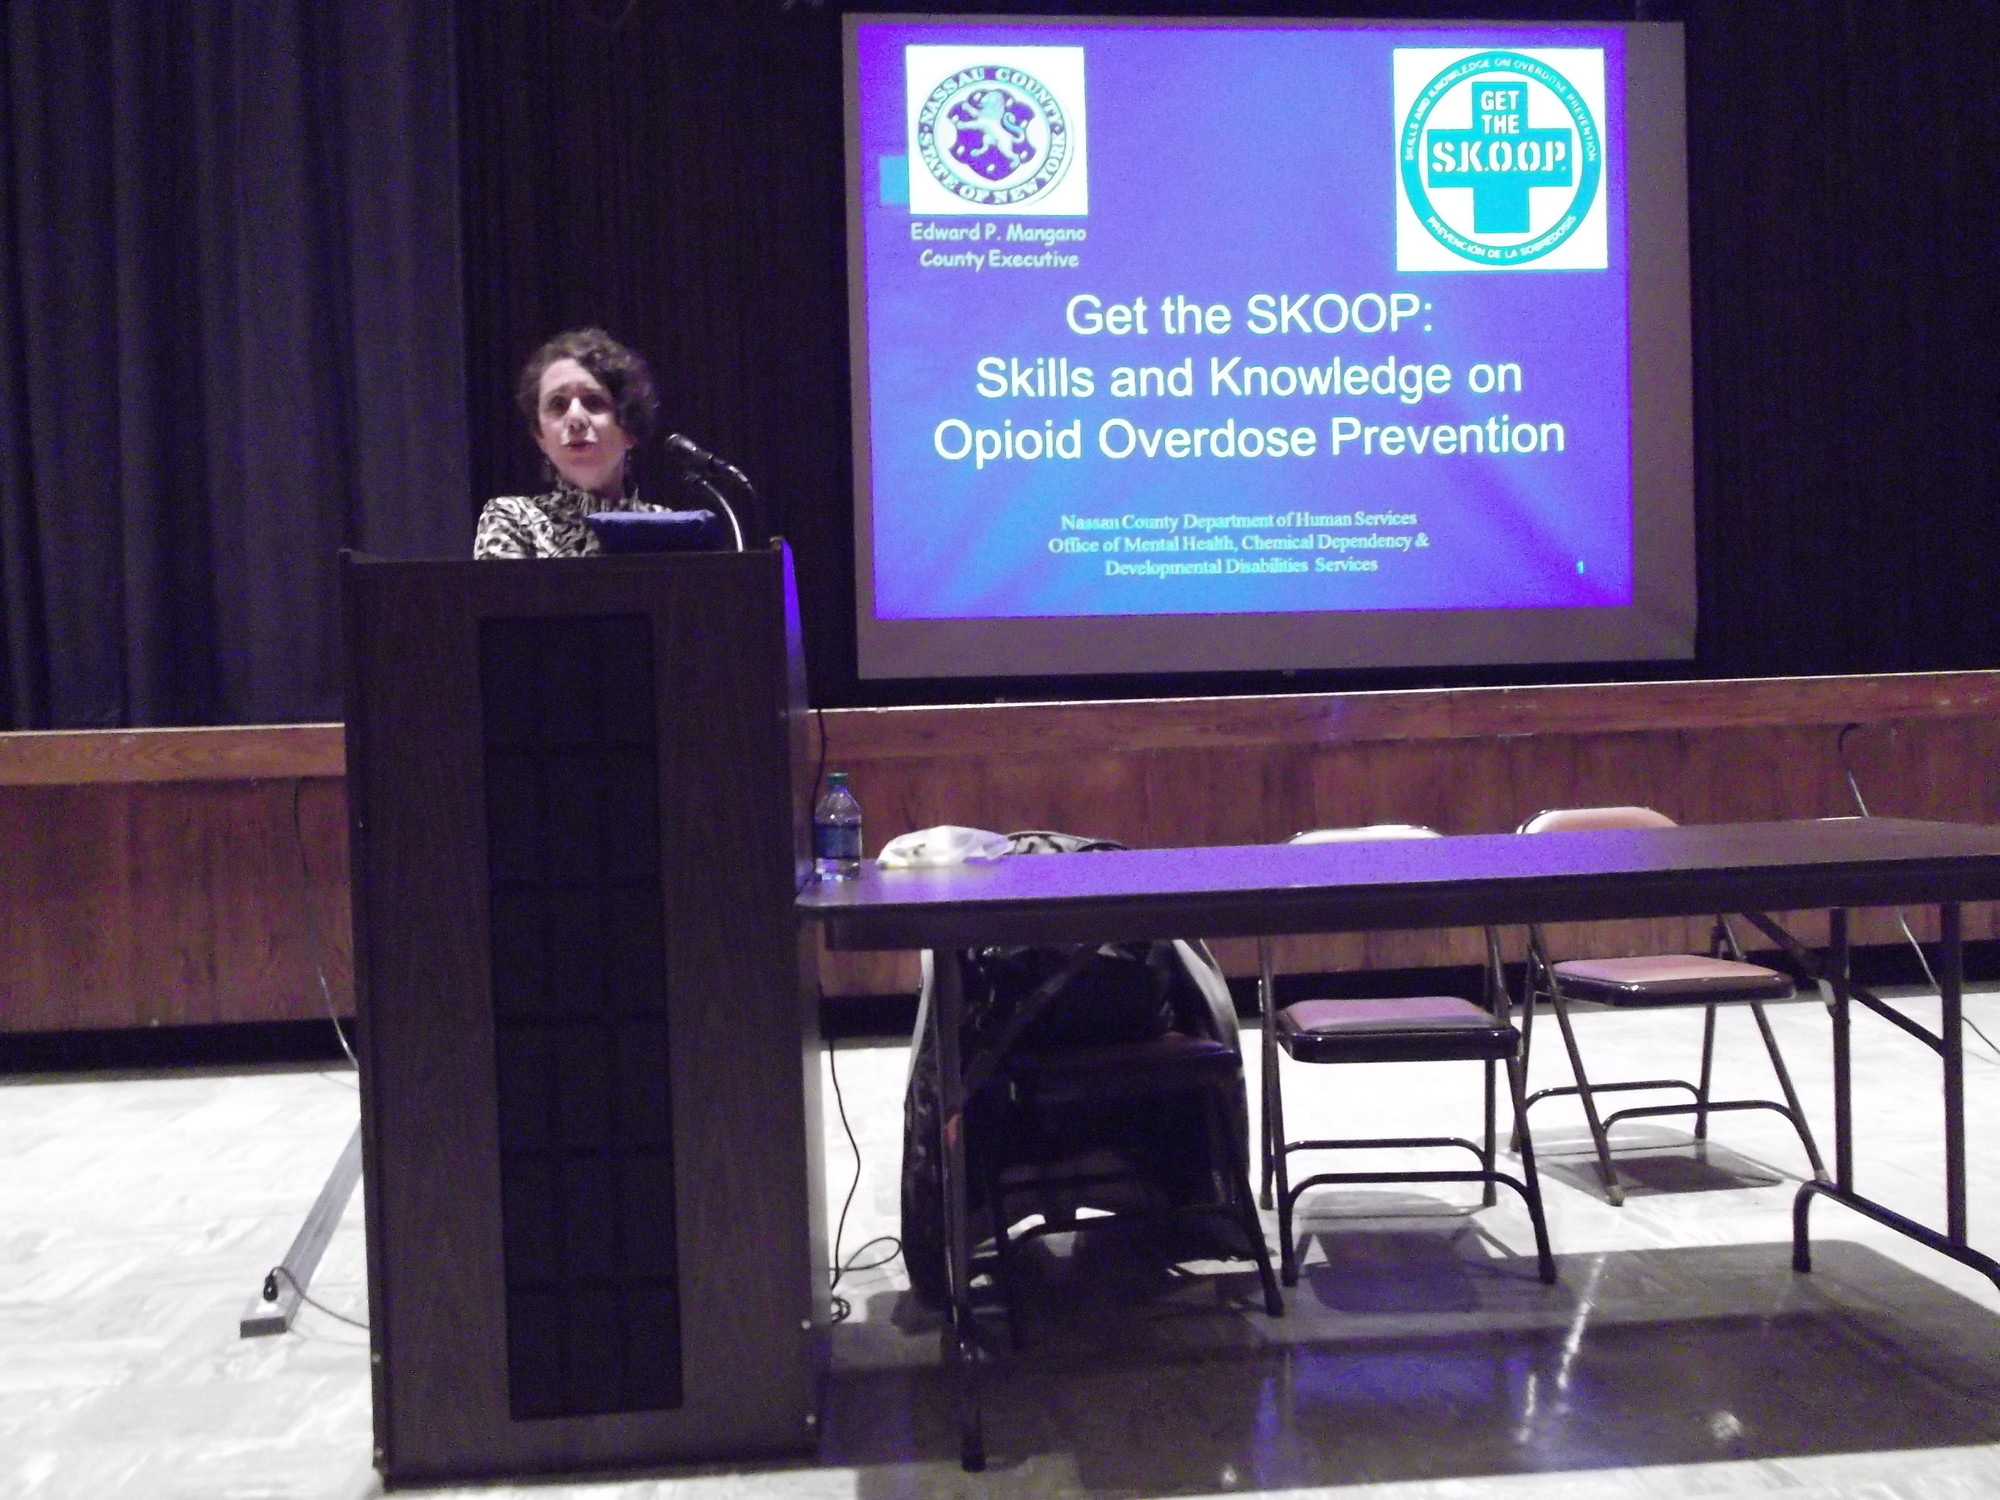 Felicia Schneberg, director of education and training at the Nassau County Office of Mental Health, Chemical Dependency and Developmental Disabilities Services, recently showed participants in a Central District seminar how to assemble intranasal inhalers used to administer Narcan, an opioid antidote.